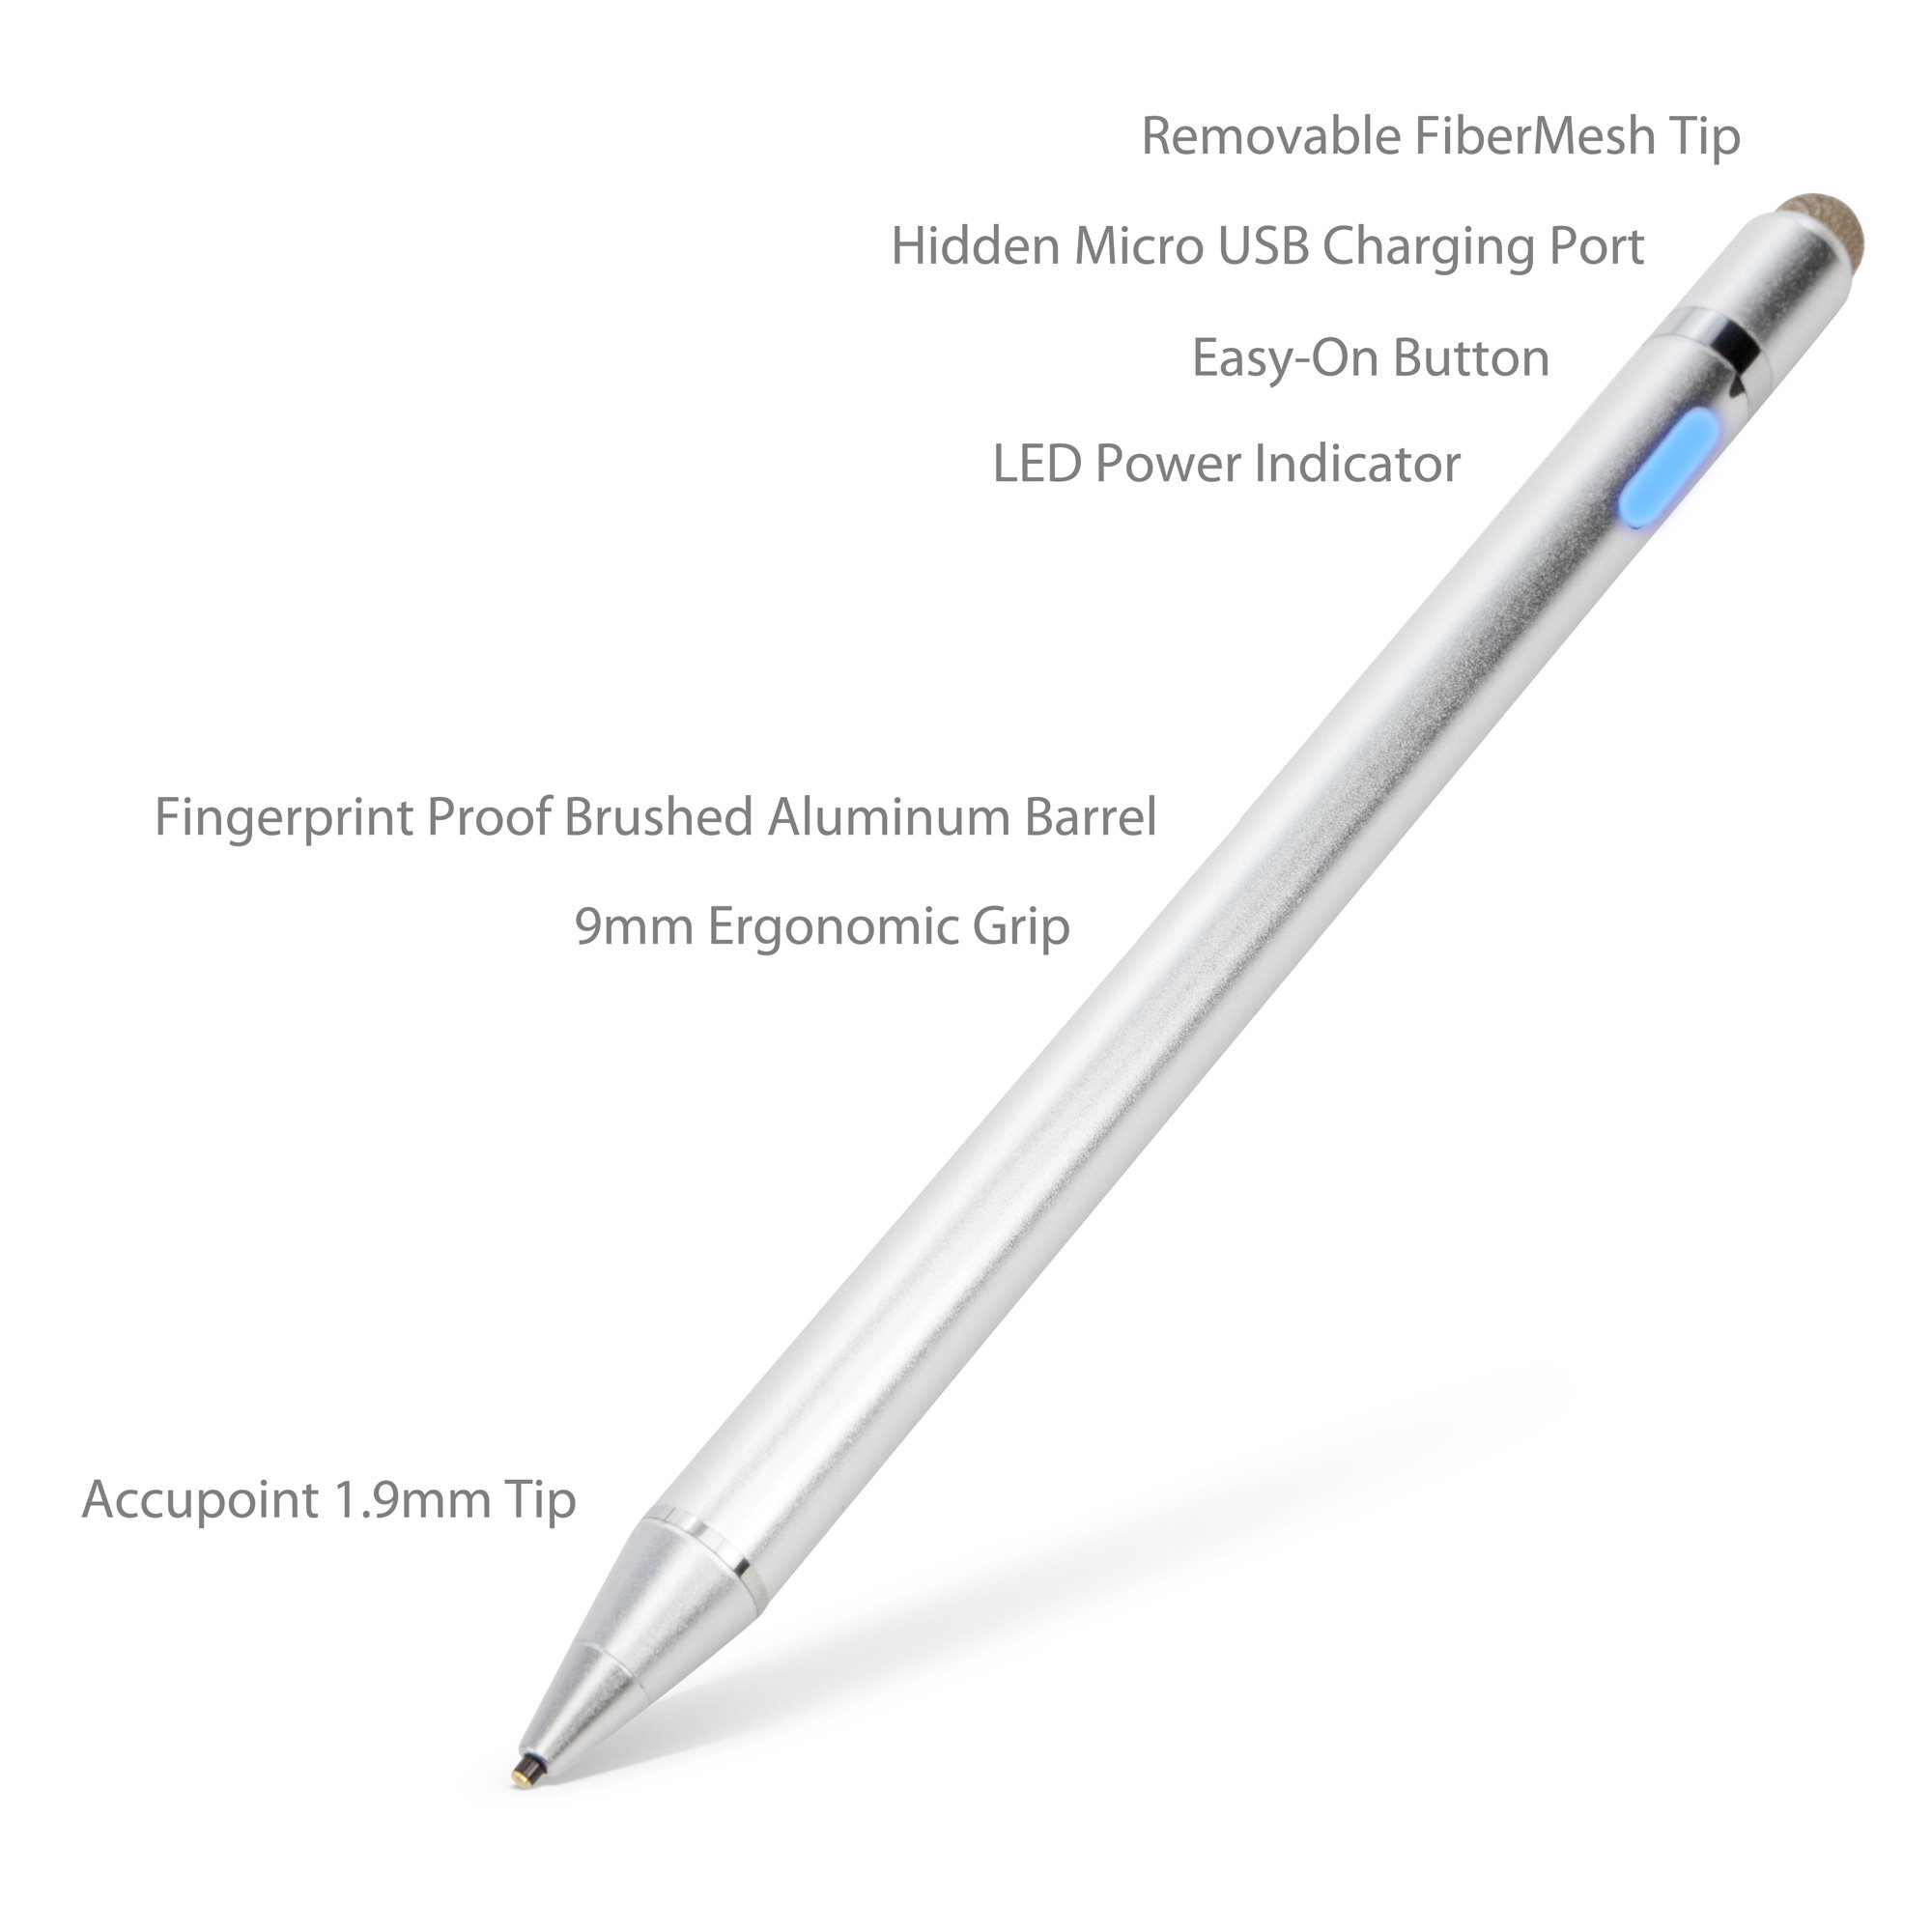 iPad Pro 10.5 (2017) Stylus Pen, BoxWave [AccuPoint Active Stylus] Electronic Stylus with Ultra Fine Tip for Apple iPad Pro 10.5 (2017) - Metallic Silver by BoxWave (Image #3)